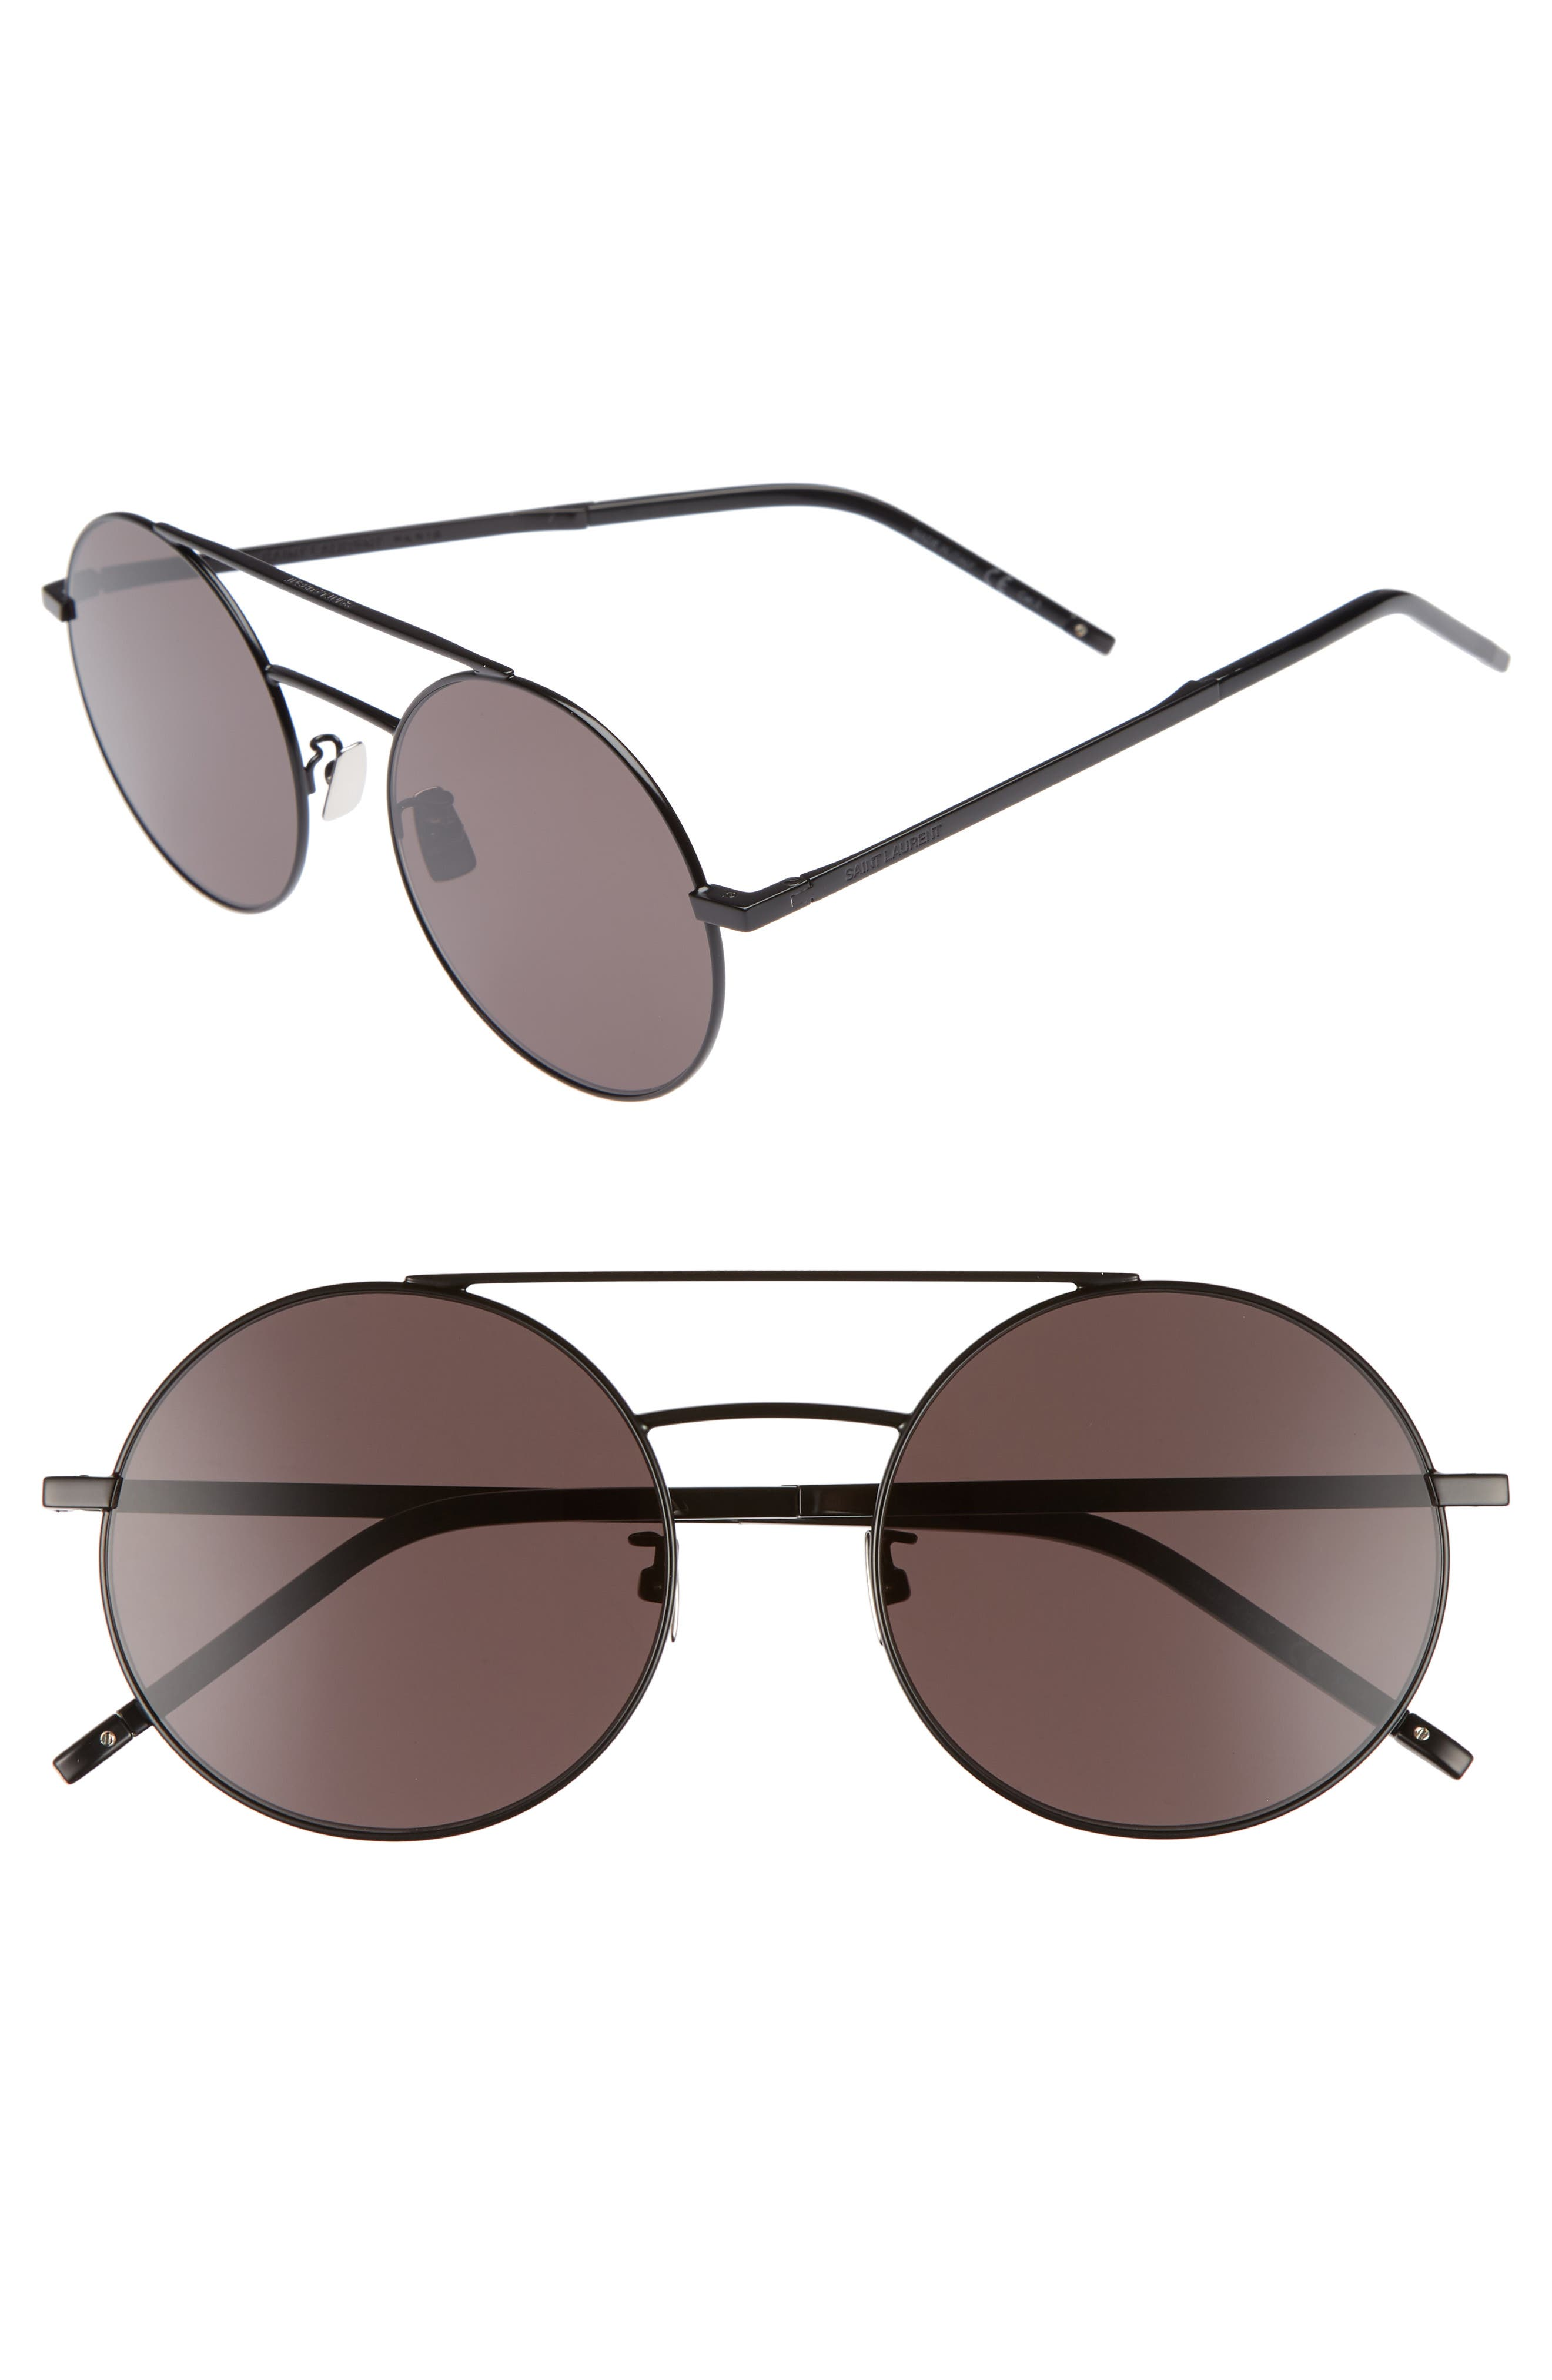 SL 210/F 56mm Round Aviator Sunglasses,                             Main thumbnail 1, color,                             Black